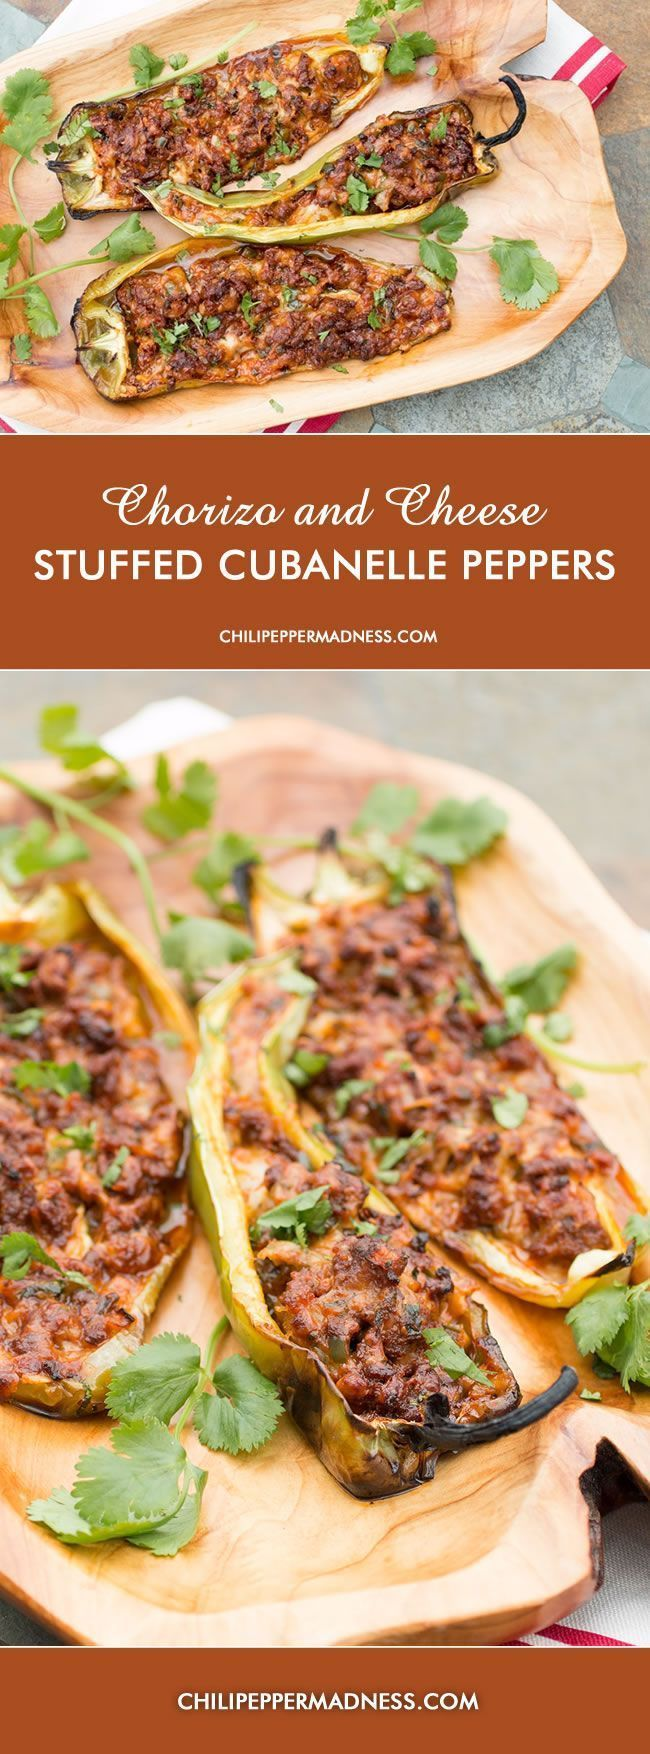 Grilled Chorizo and Cheese Stuffed Cubanelle Peppers | Chili Pepper ...